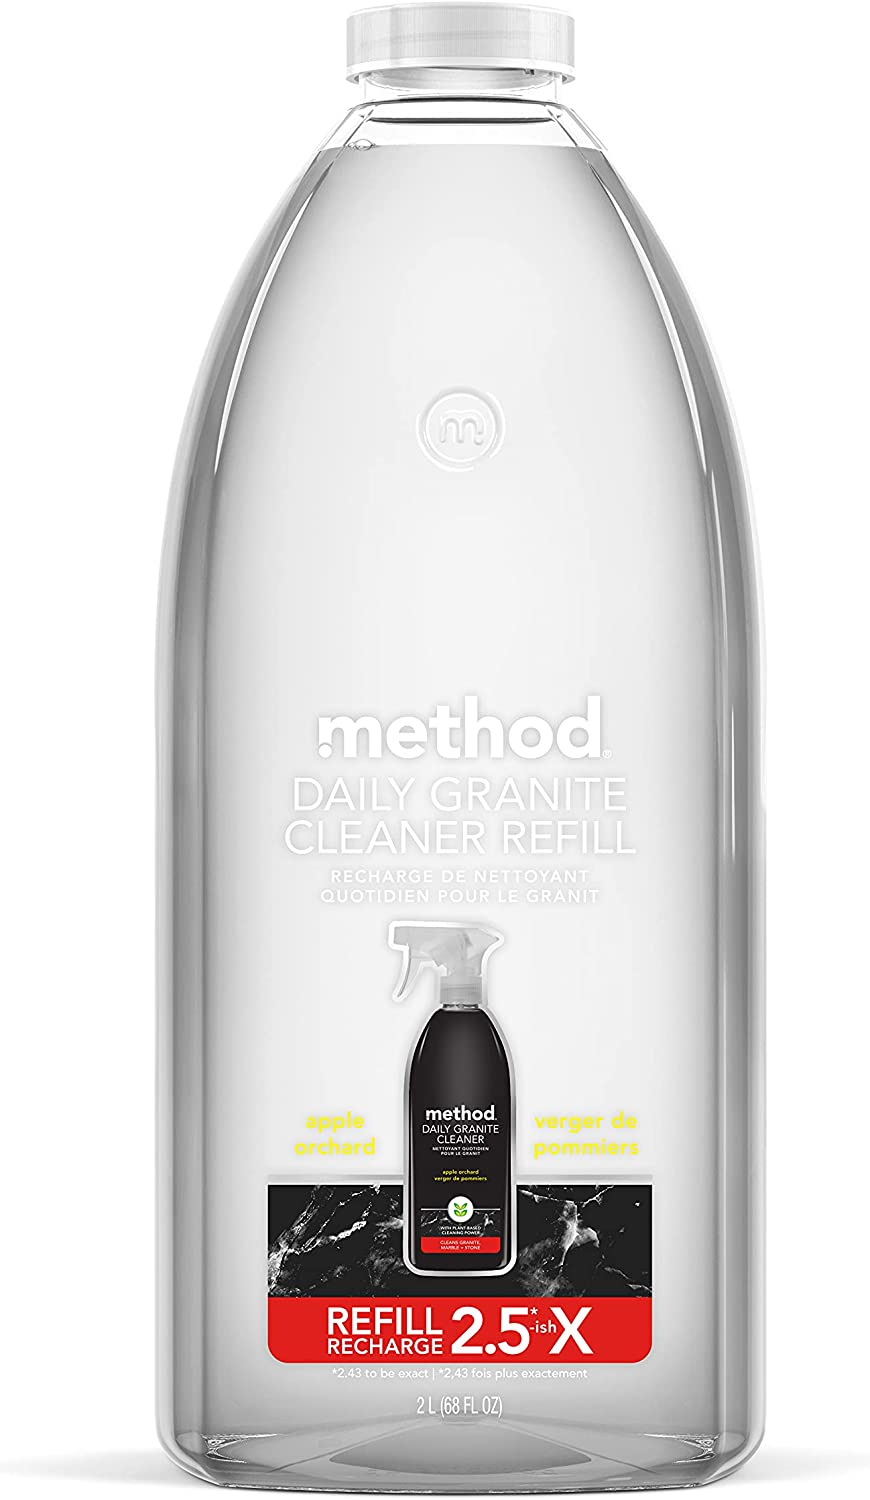 Method Daily Granite Cleaner Refill, Apple Orchard, 68 Ounce, 1 pack, Packaging May Vary